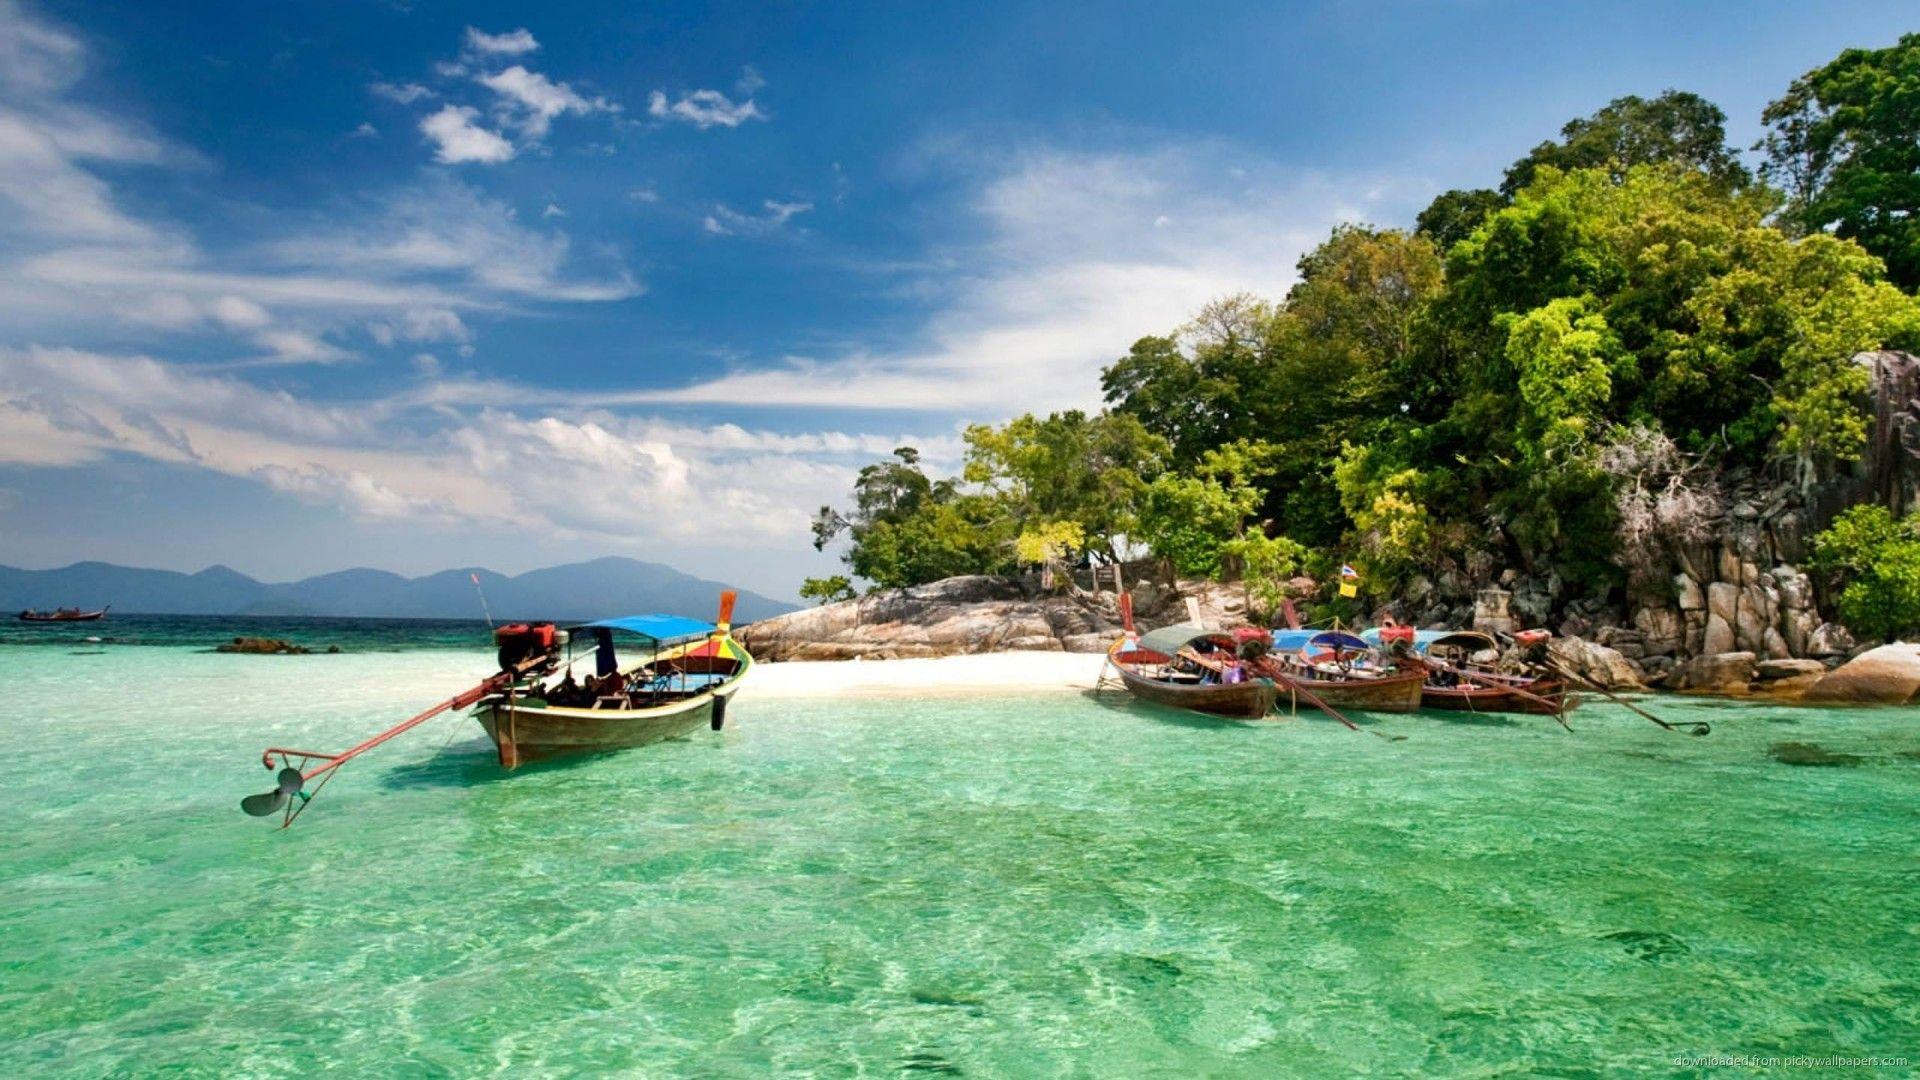 Thailand Beach HD Wallpaper | HD Desktop Background